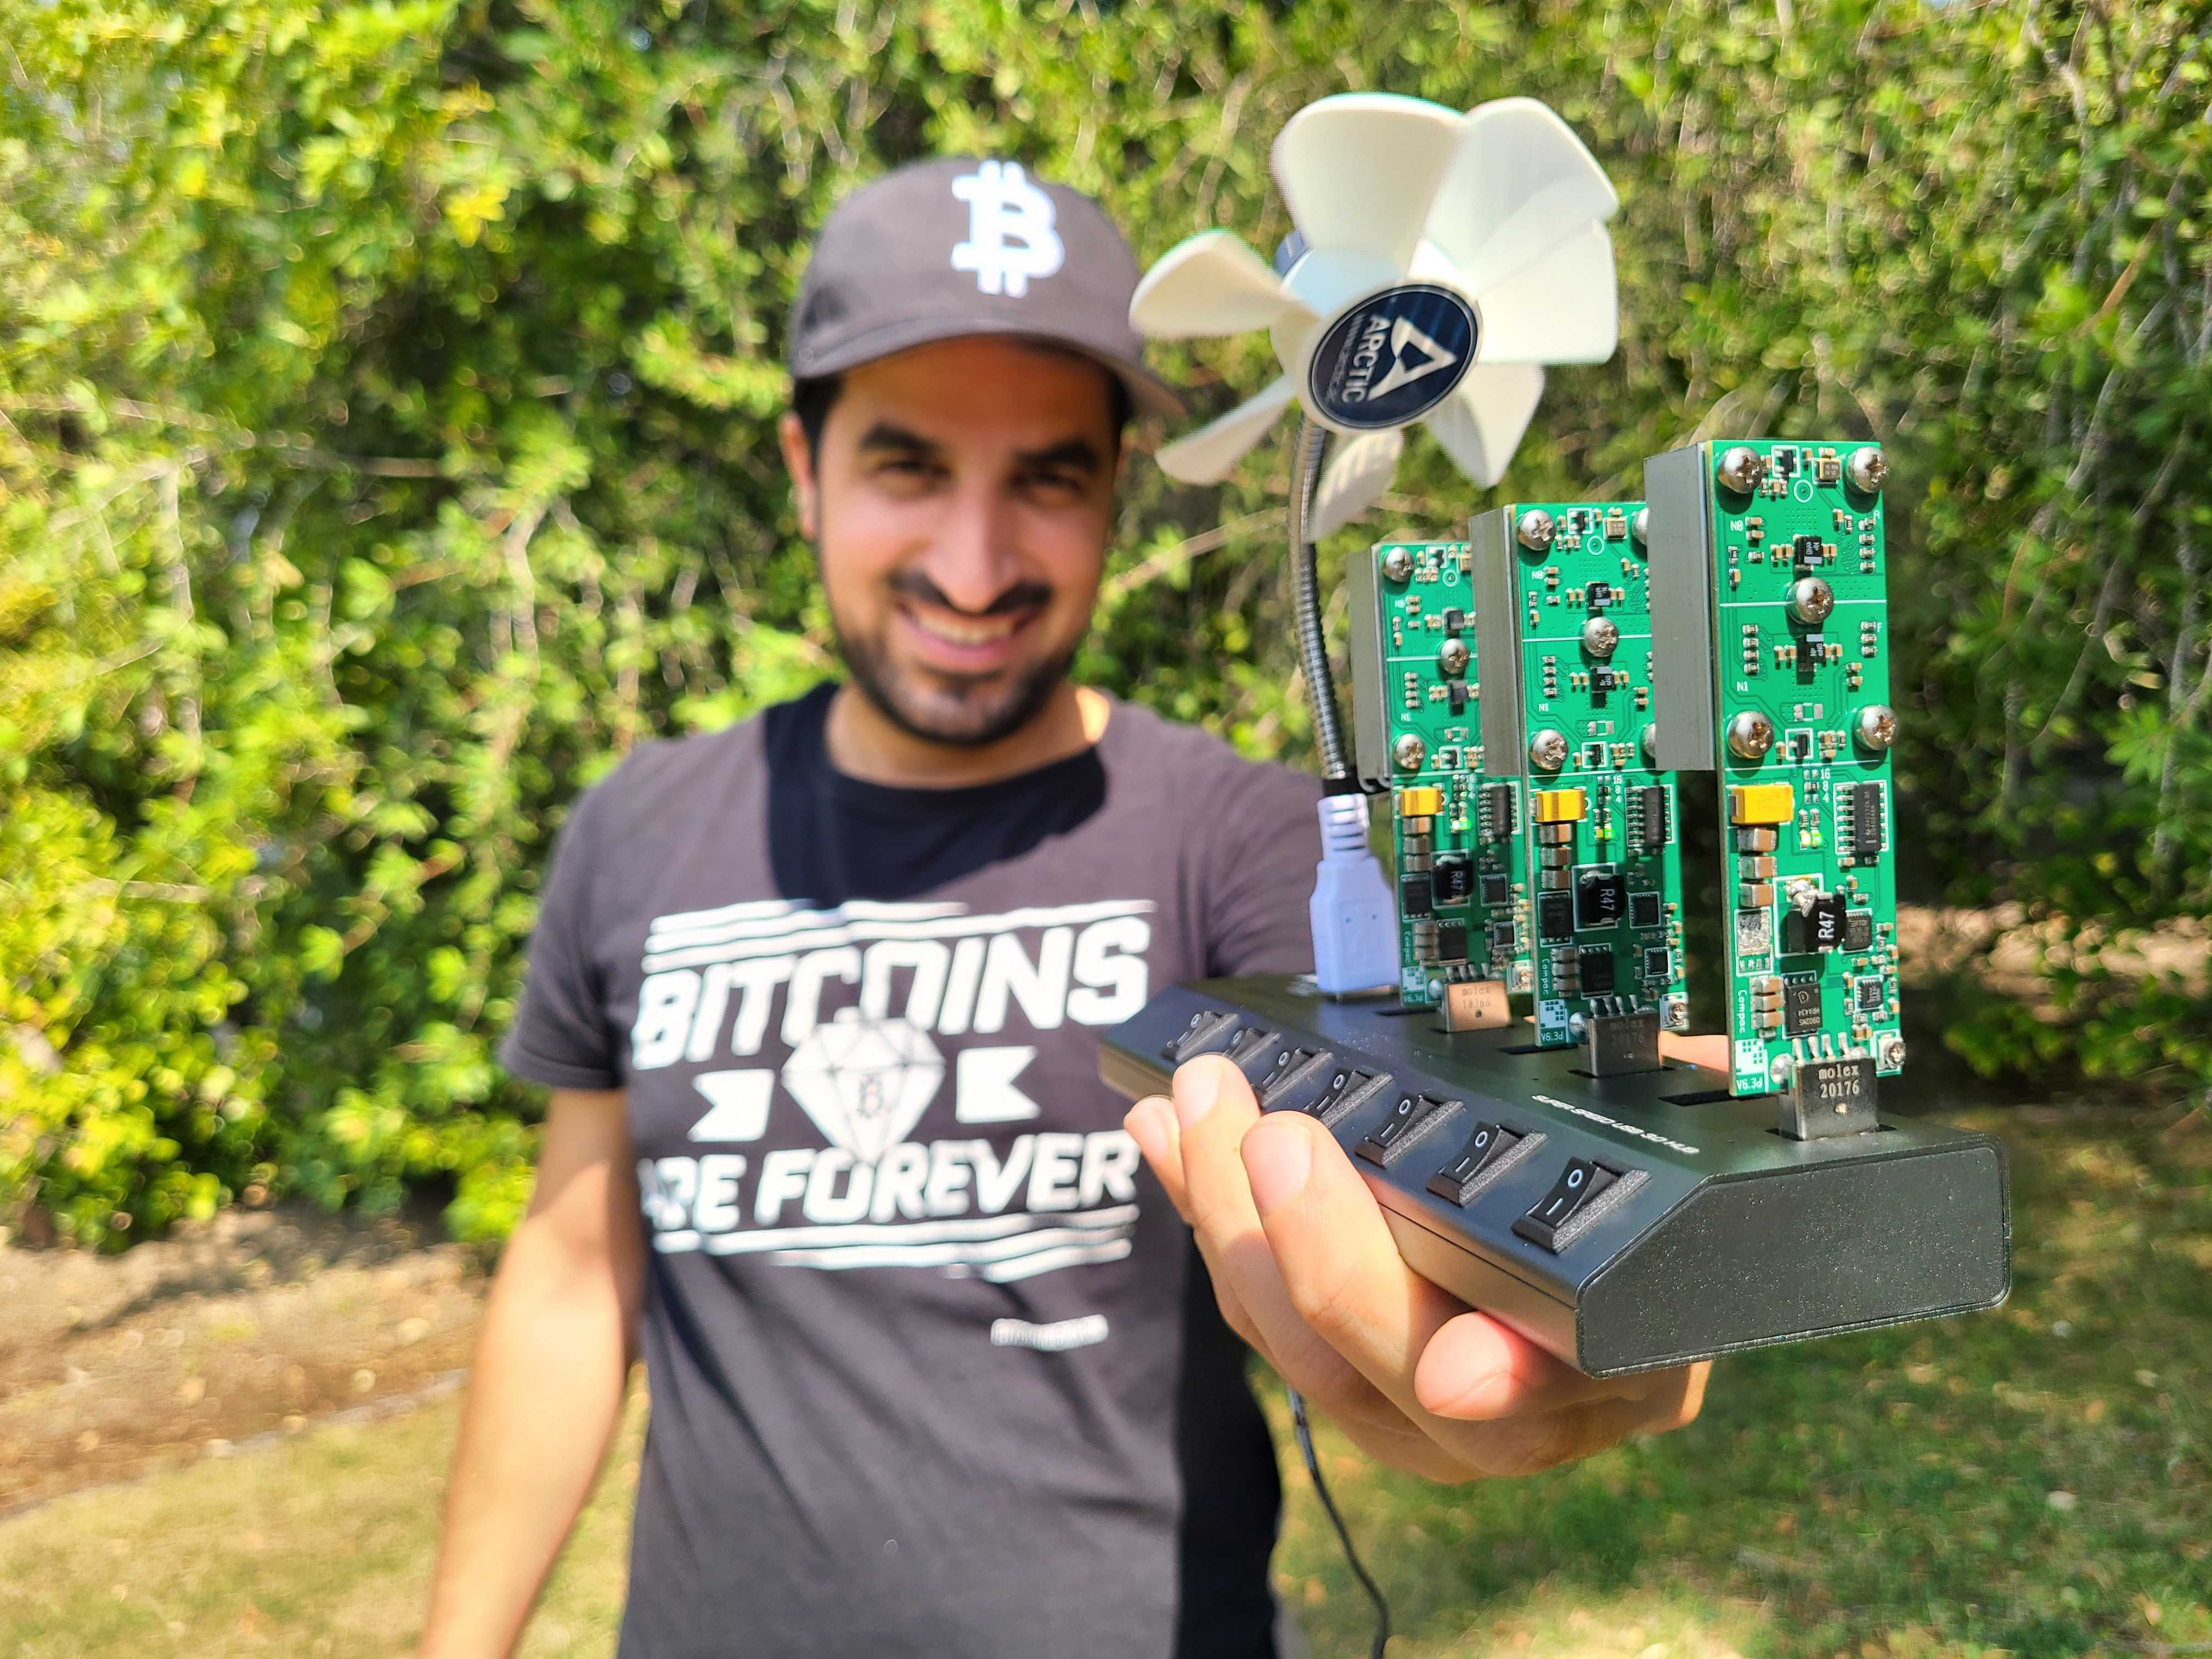 This $875 crypto mining rig went viral on TikTok, but it's not very lucrative